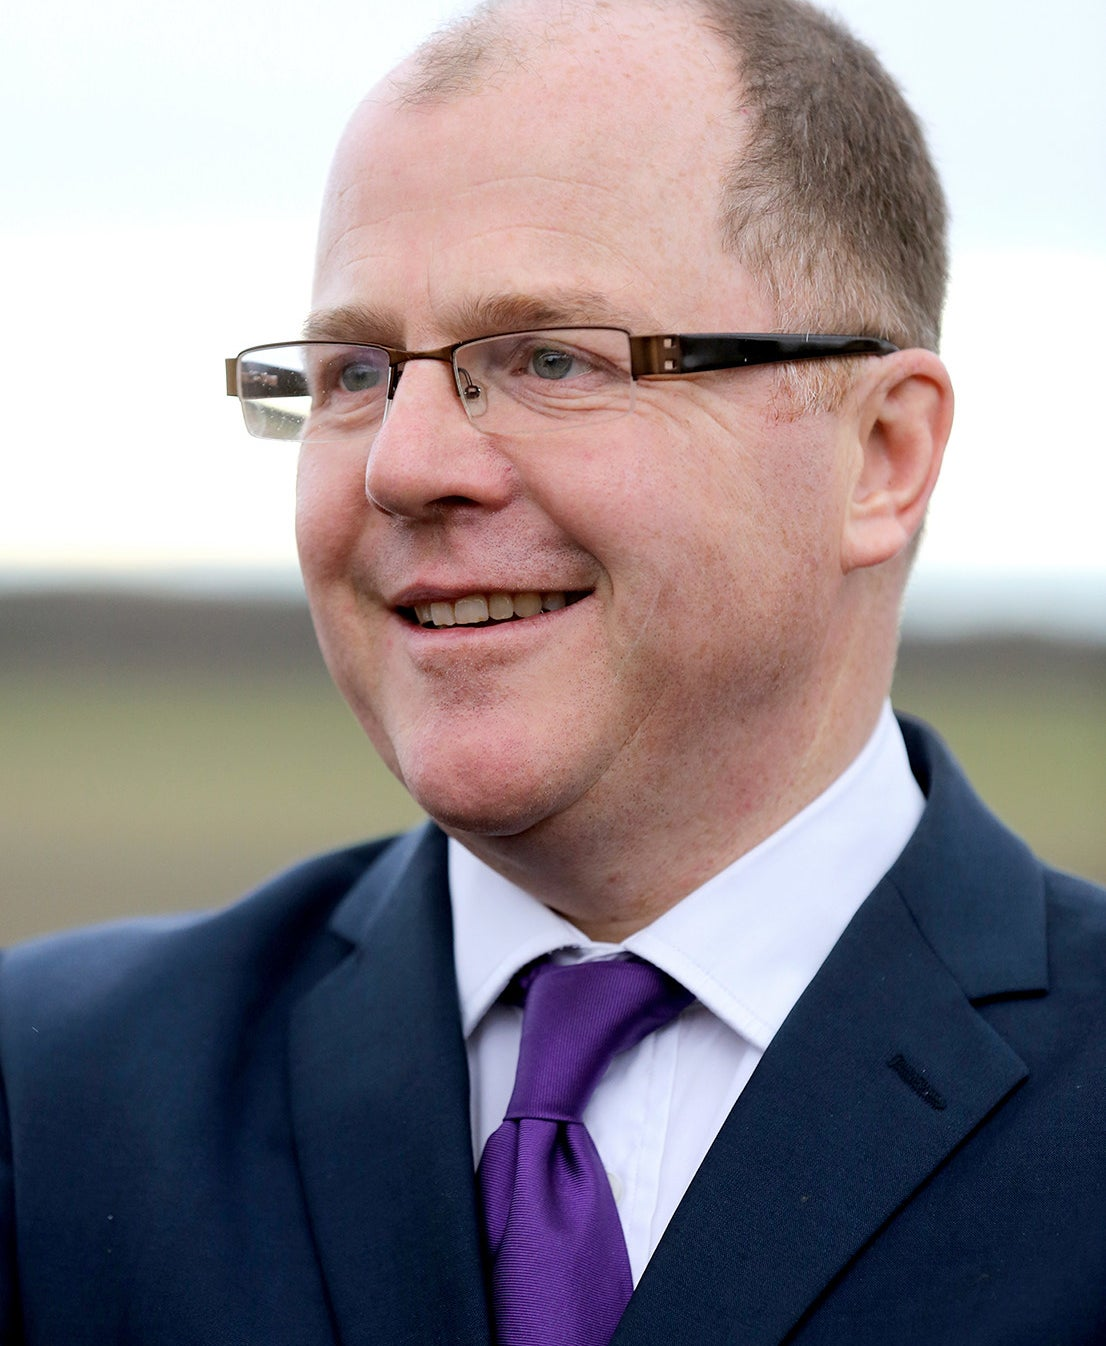 George Freeman, MP for Mid Norfolk and chairman of Theresa May's policy board.